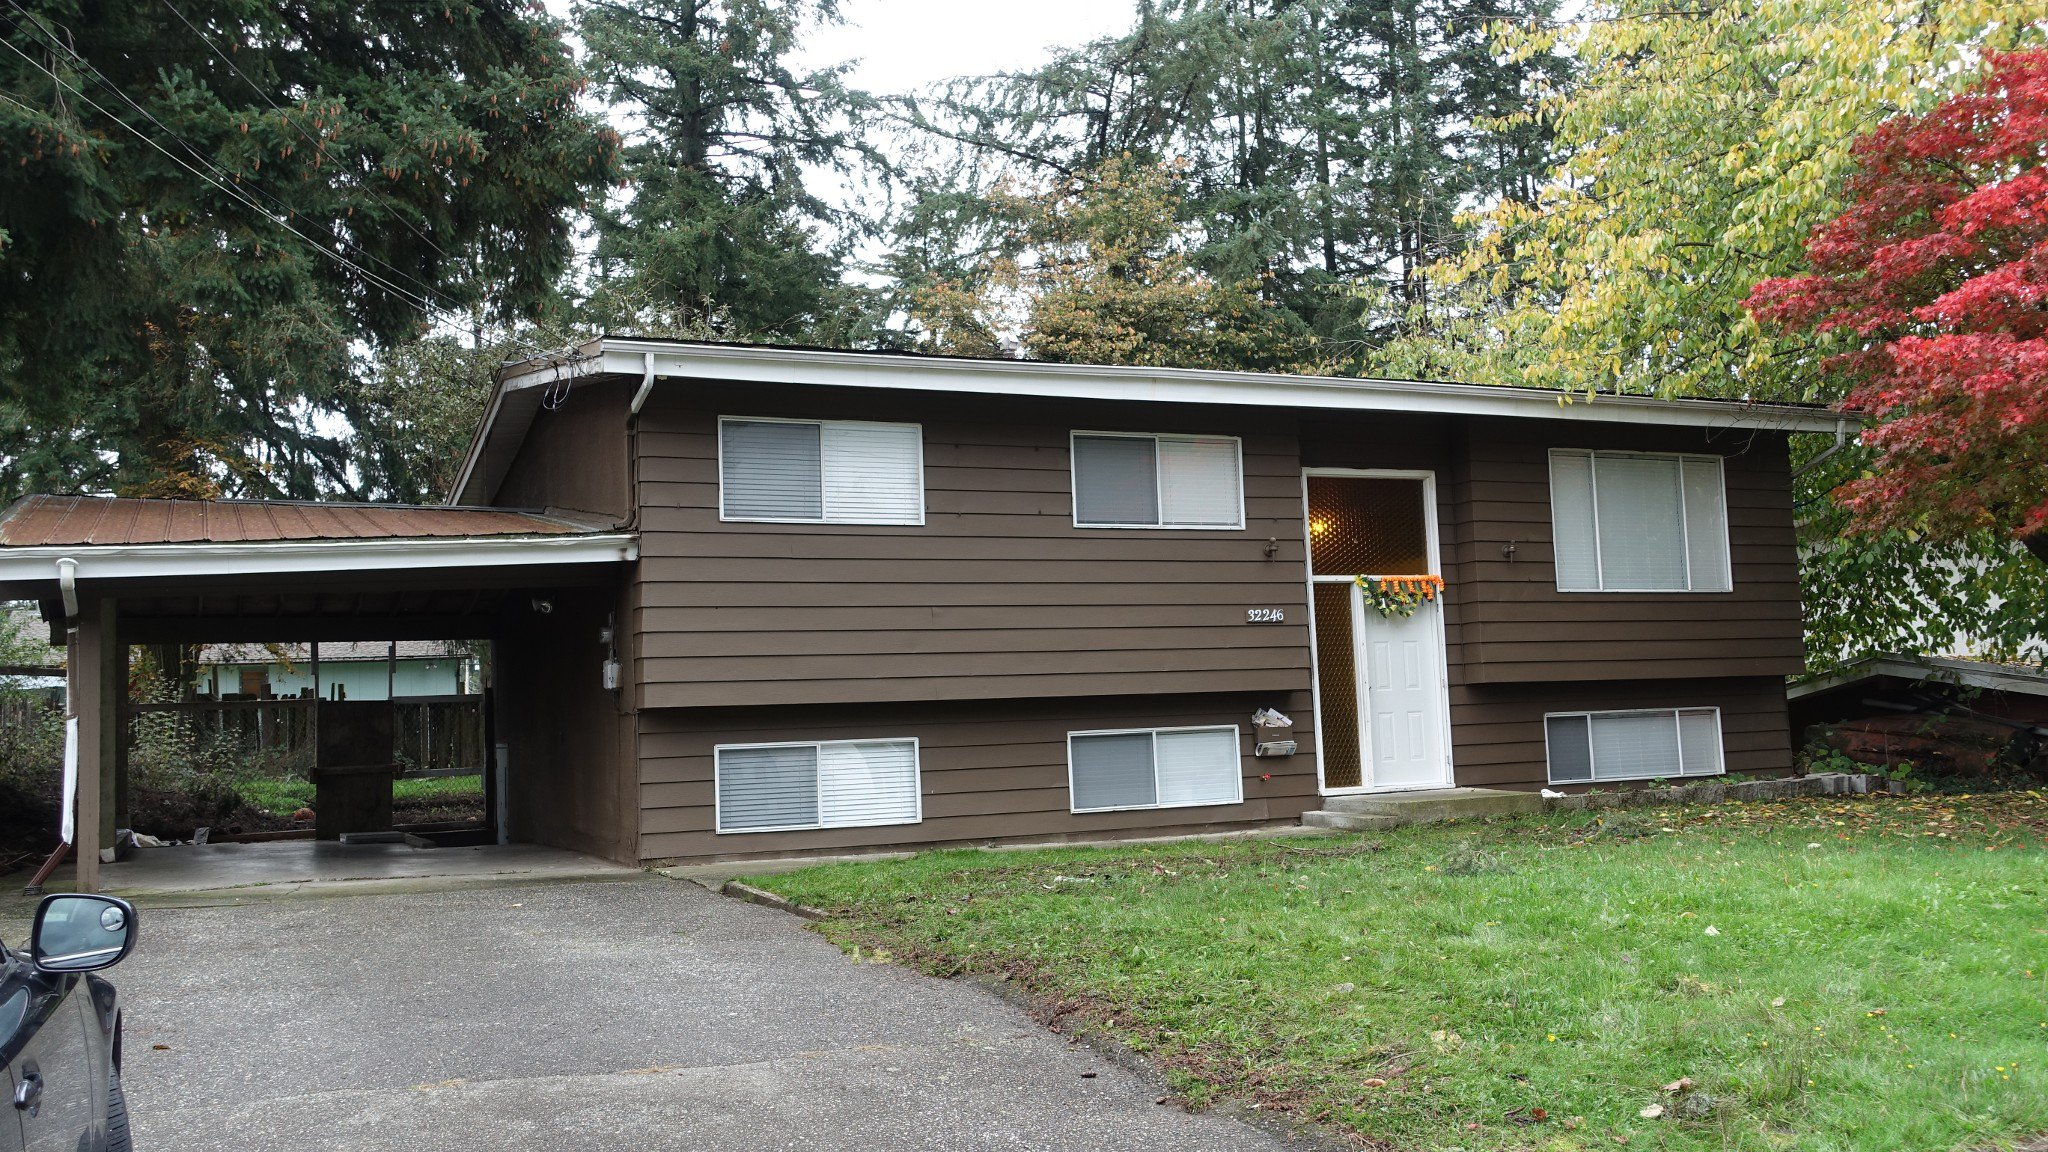 Main Photo: 32246 Granite Ave. in Abbotsford: Abbotsford West House for rent